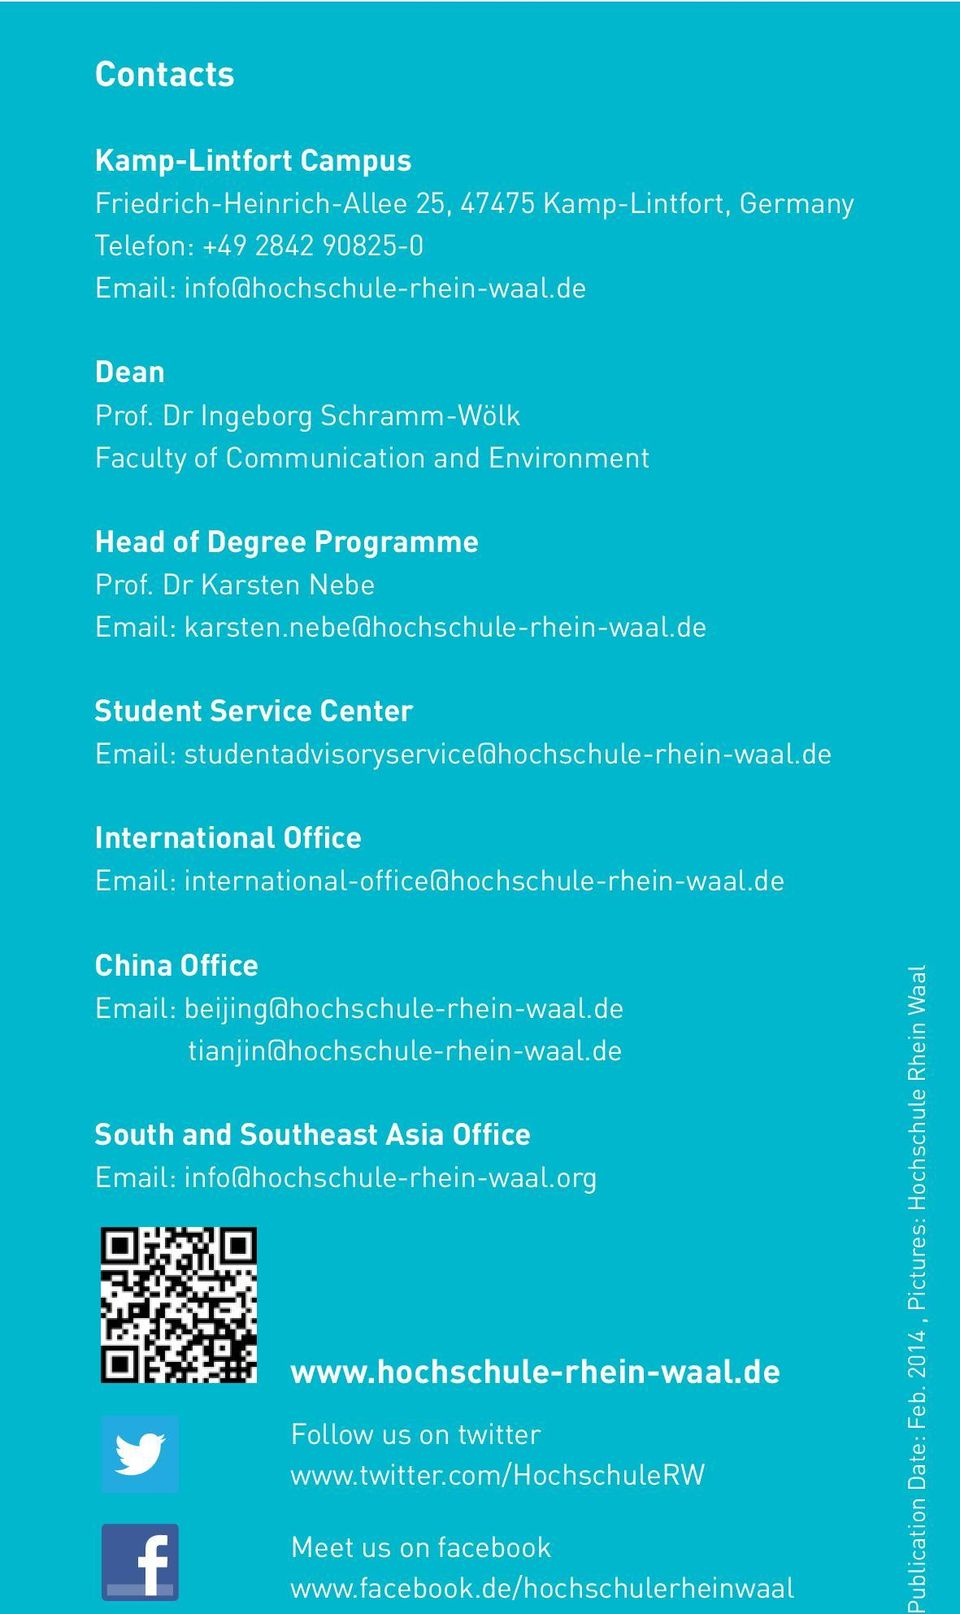 de Student Service Center Email: studentadvisoryservice@hochschule-rhein-waal.de International Office Email: international-office@hochschule-rhein-waal.